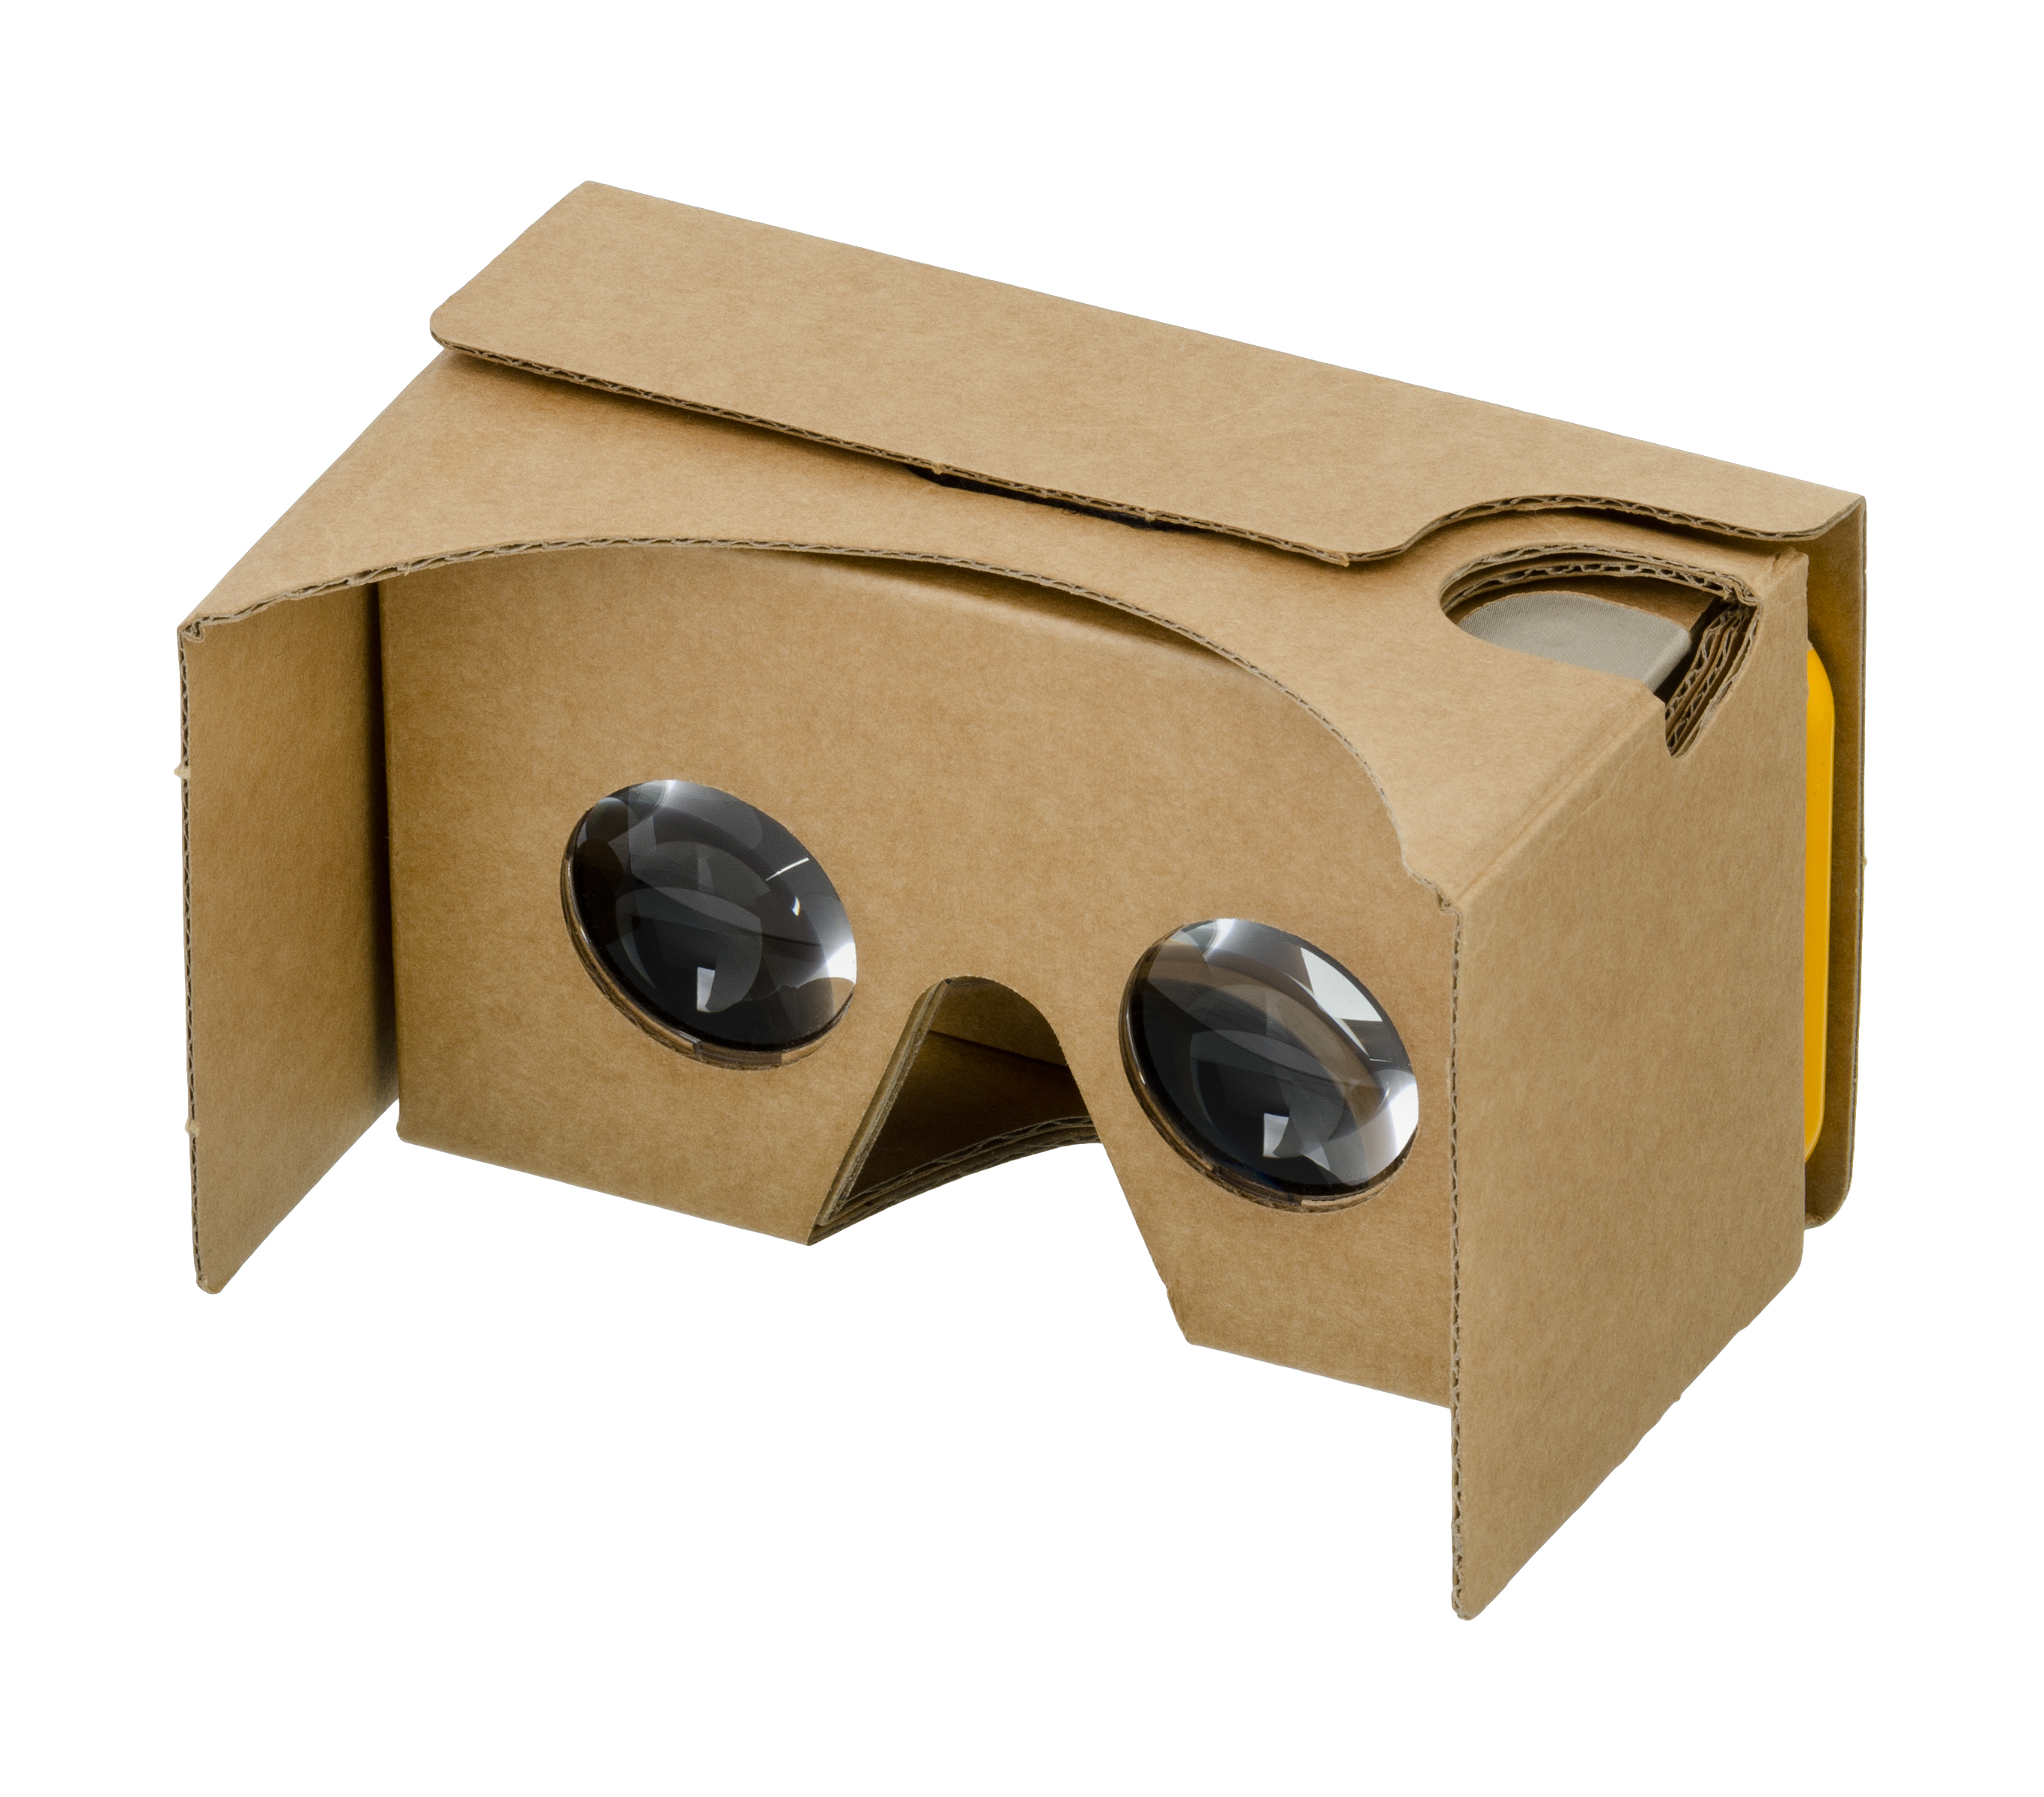 A Google Cardboard headset, a cheap and accessible standard for experimenting with virtual reality.